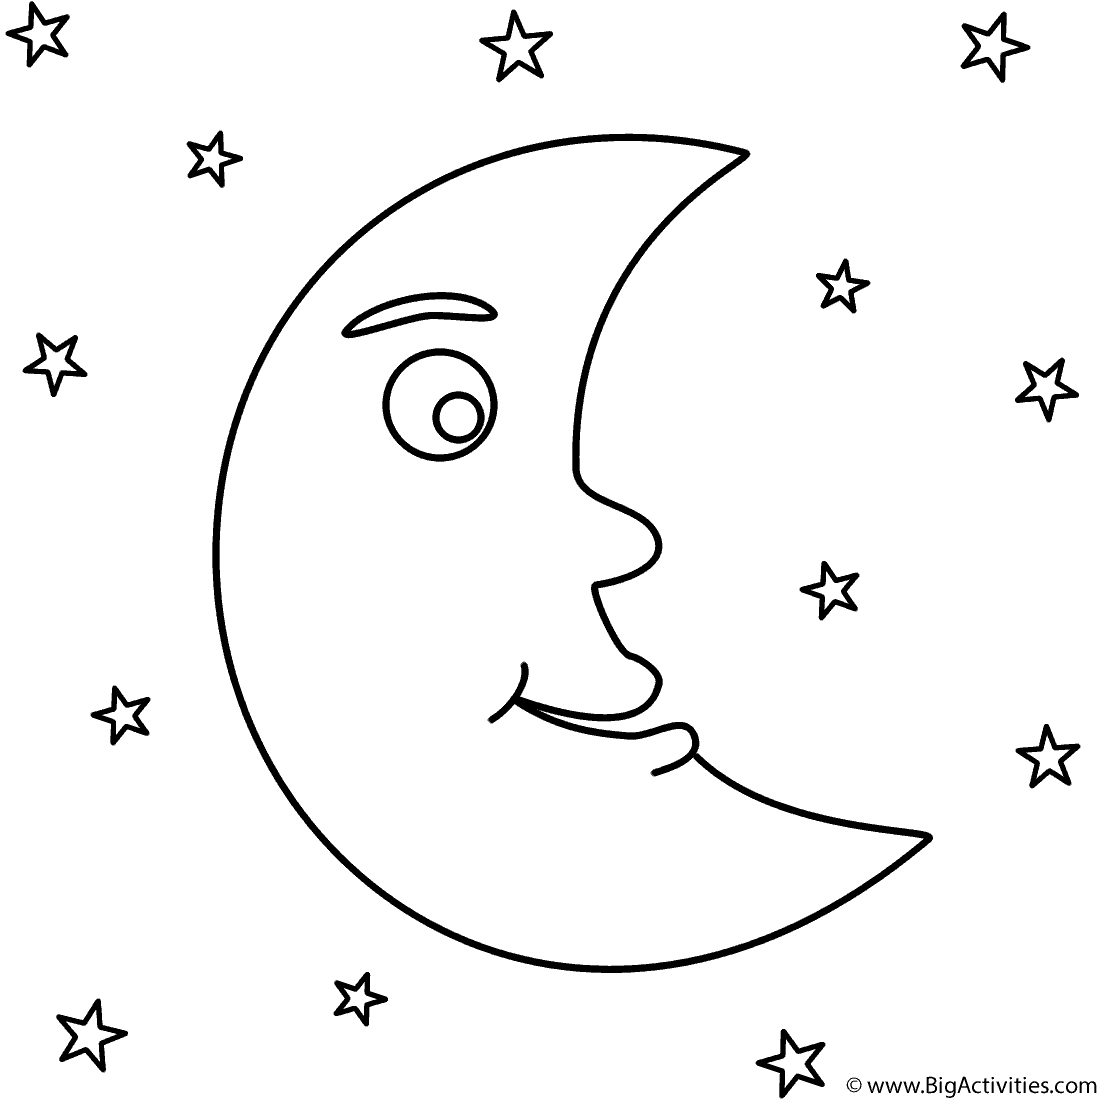 Crescent Moon with Stars - Coloring Page (Space)